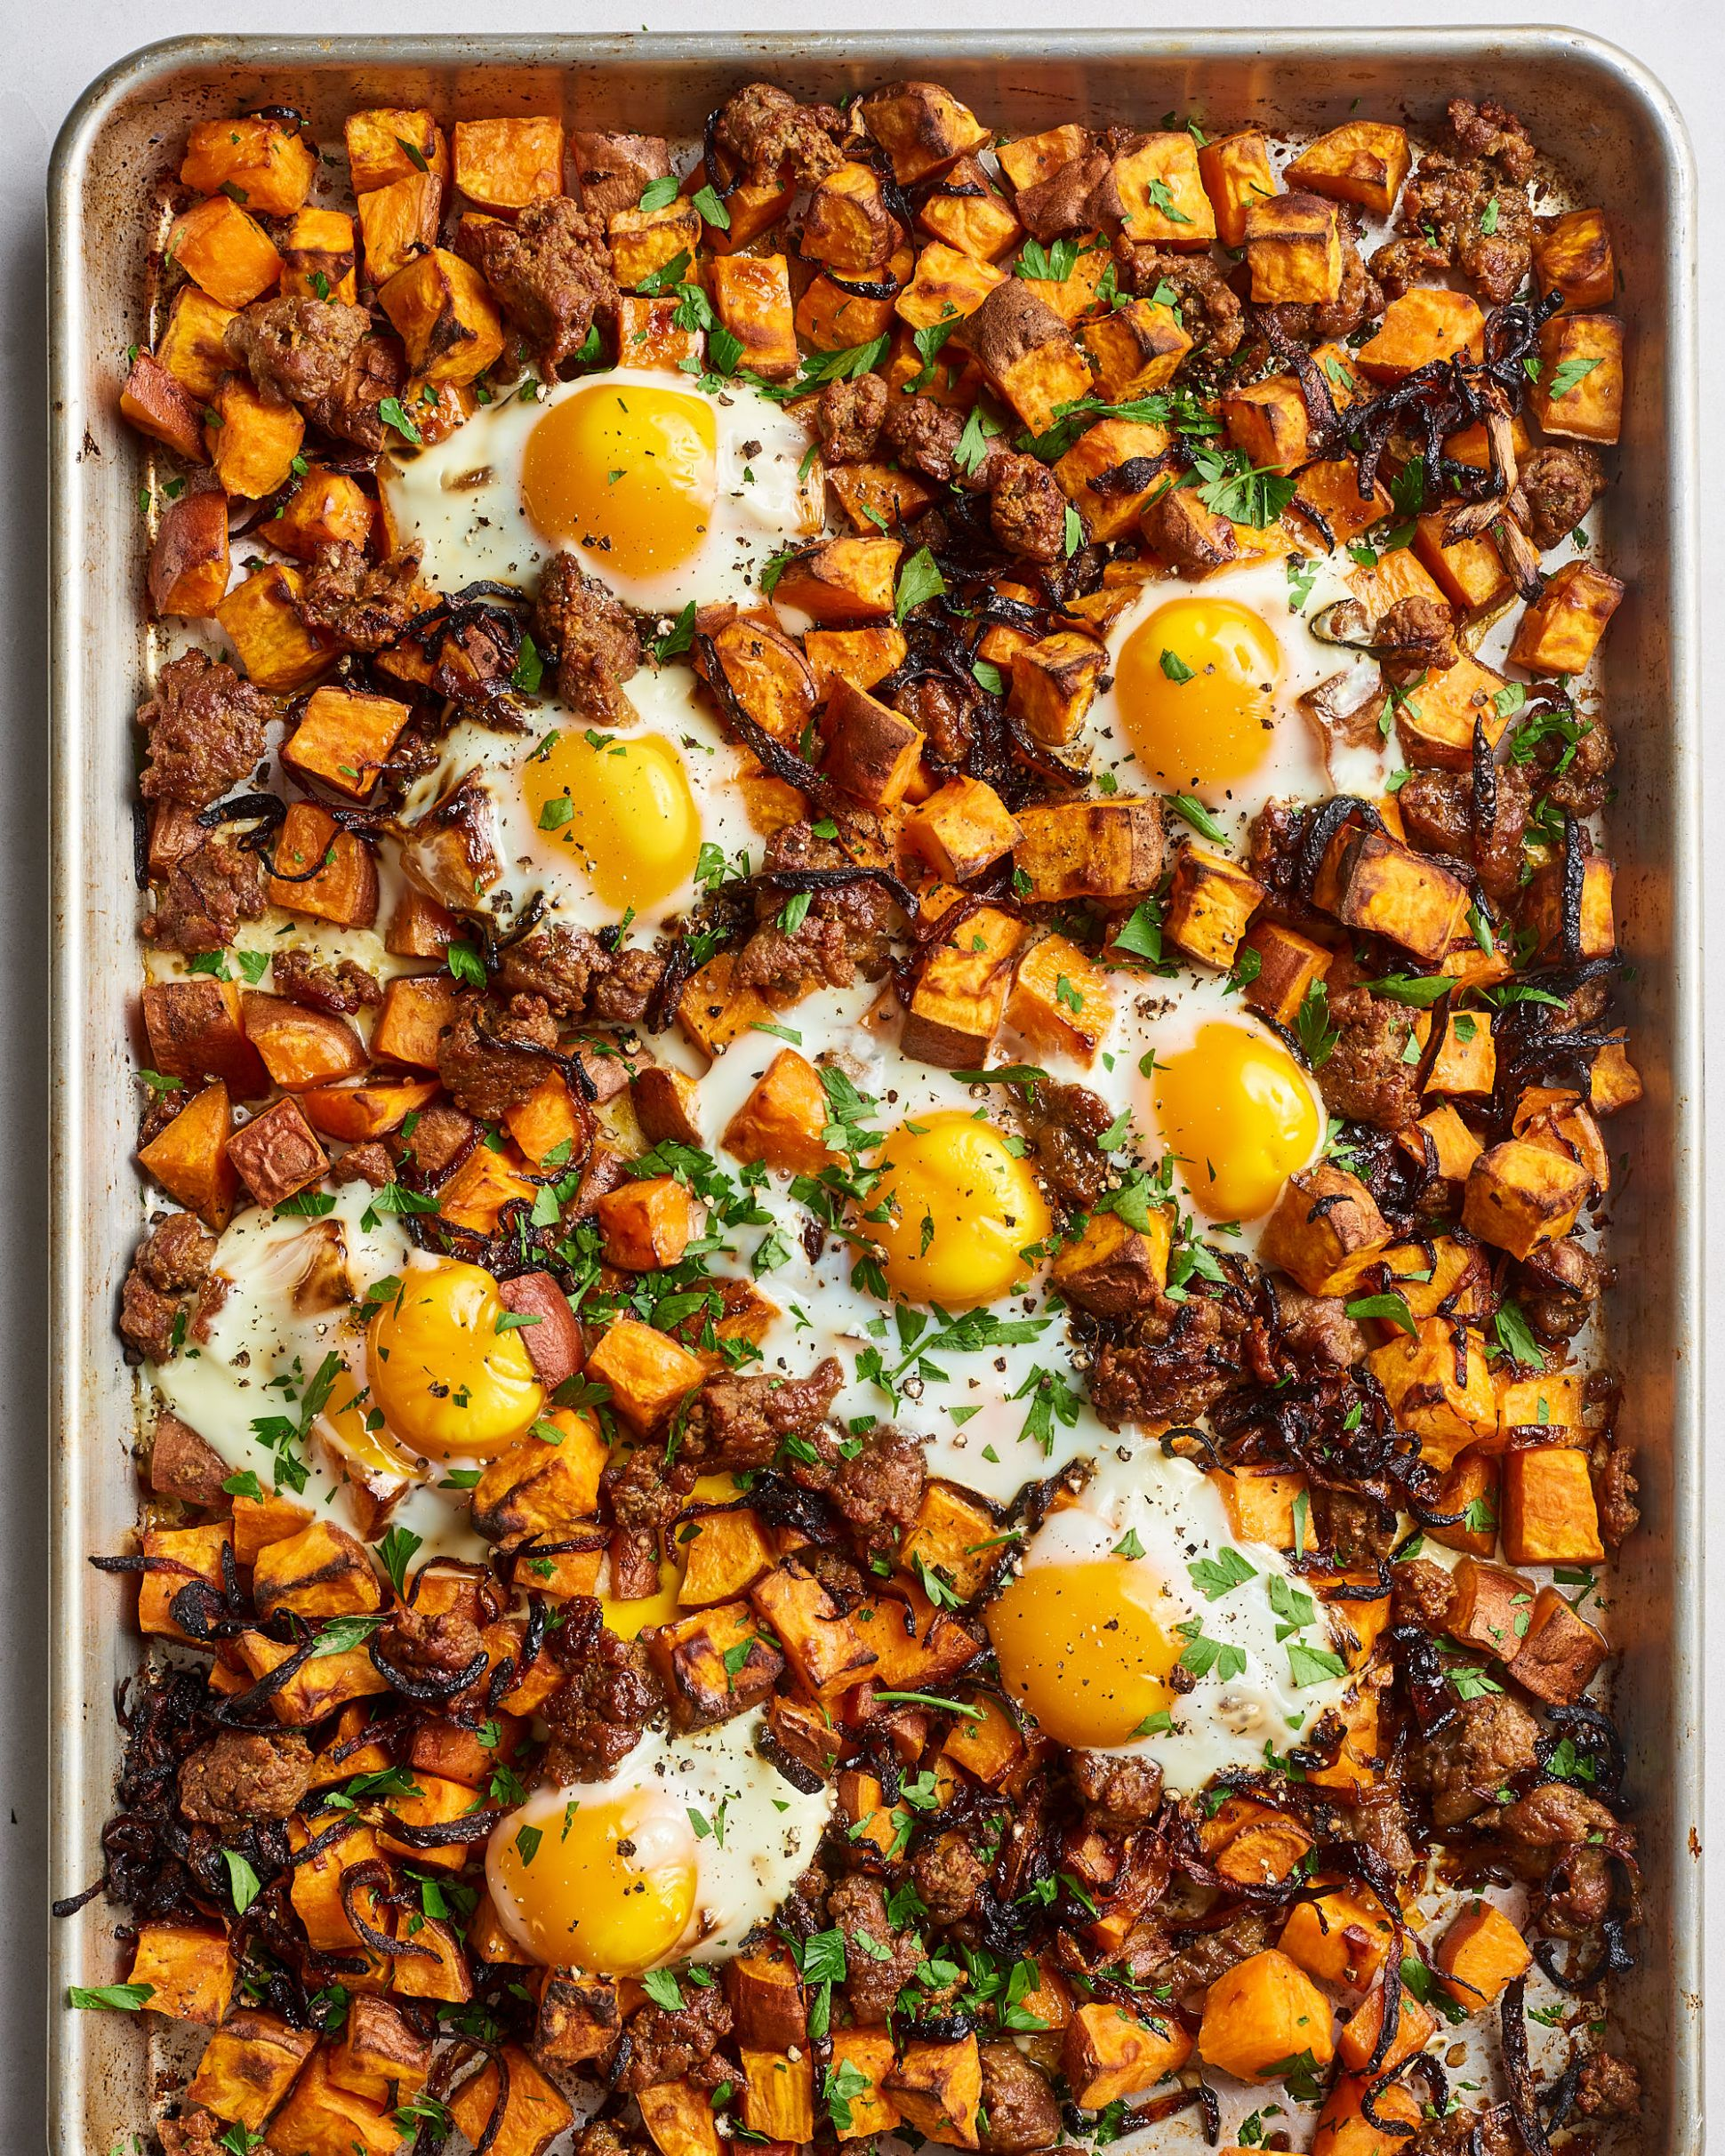 Sweet Potato Hash with Caramelized Onions, Sausage & Eggs - Recipes Using Egg